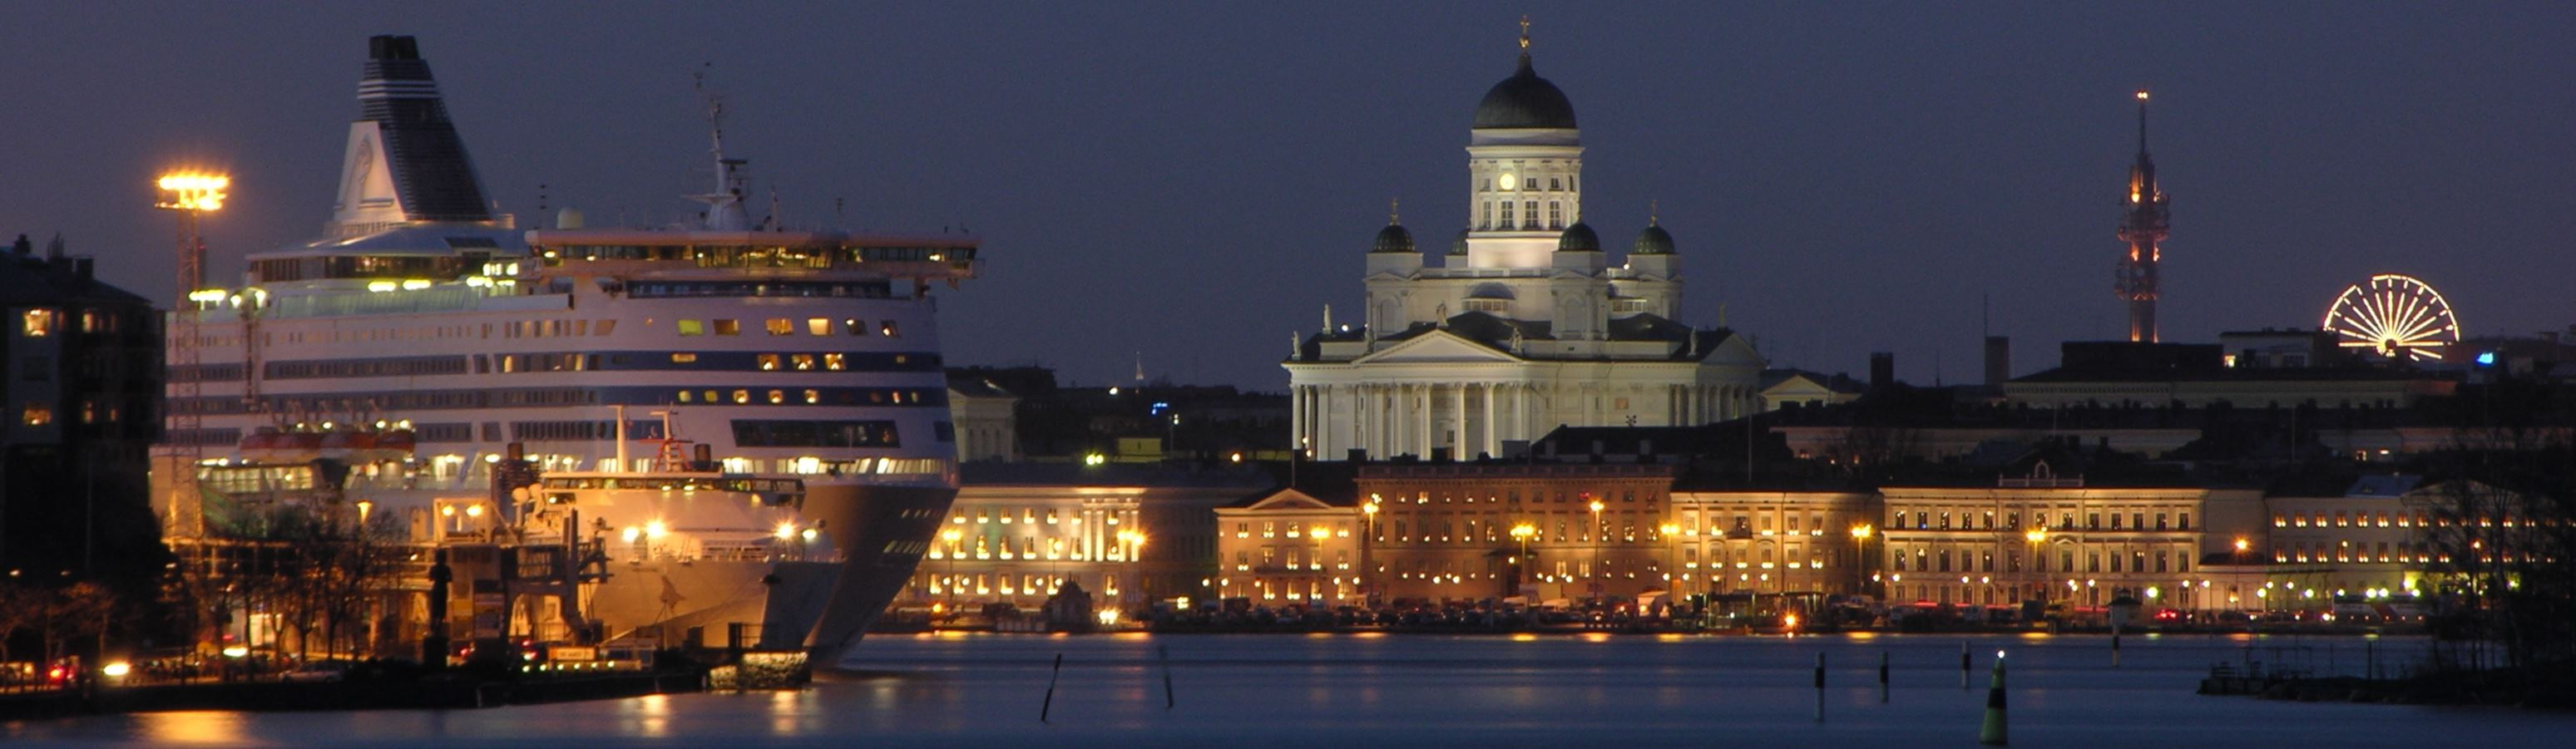 Helsinki What To Do And To See Places To Visit